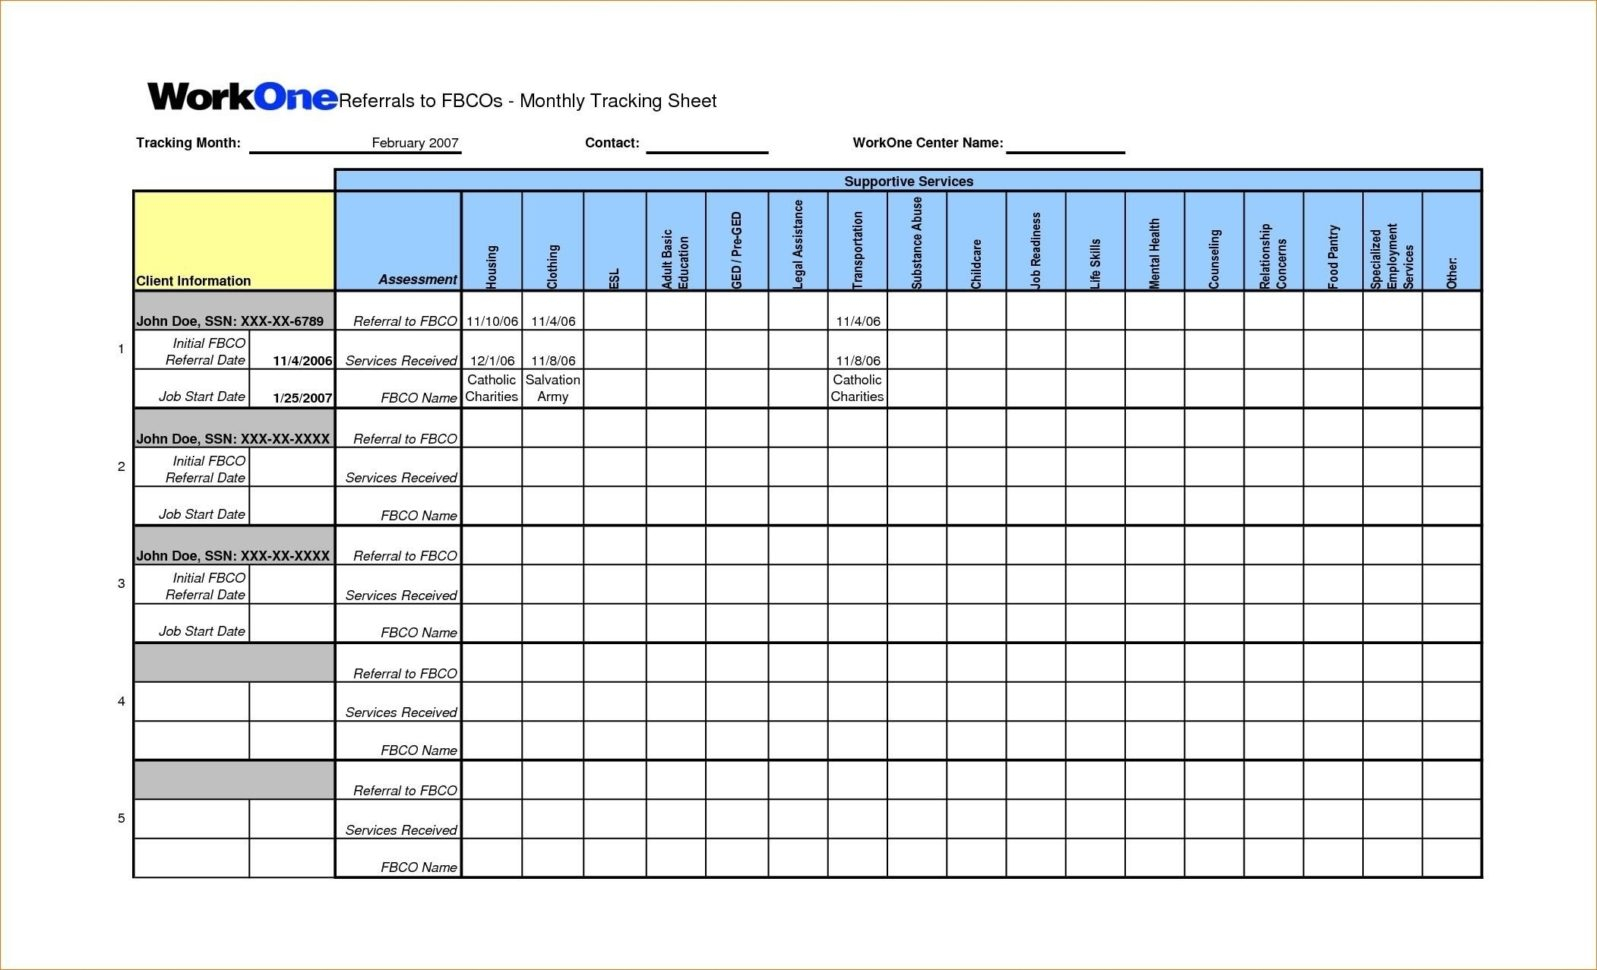 Lead Prospect Tracking Spreadsheet Excel   Cehaer Spreadsheet Within Lead Prospect Tracking Spreadsheet Excel